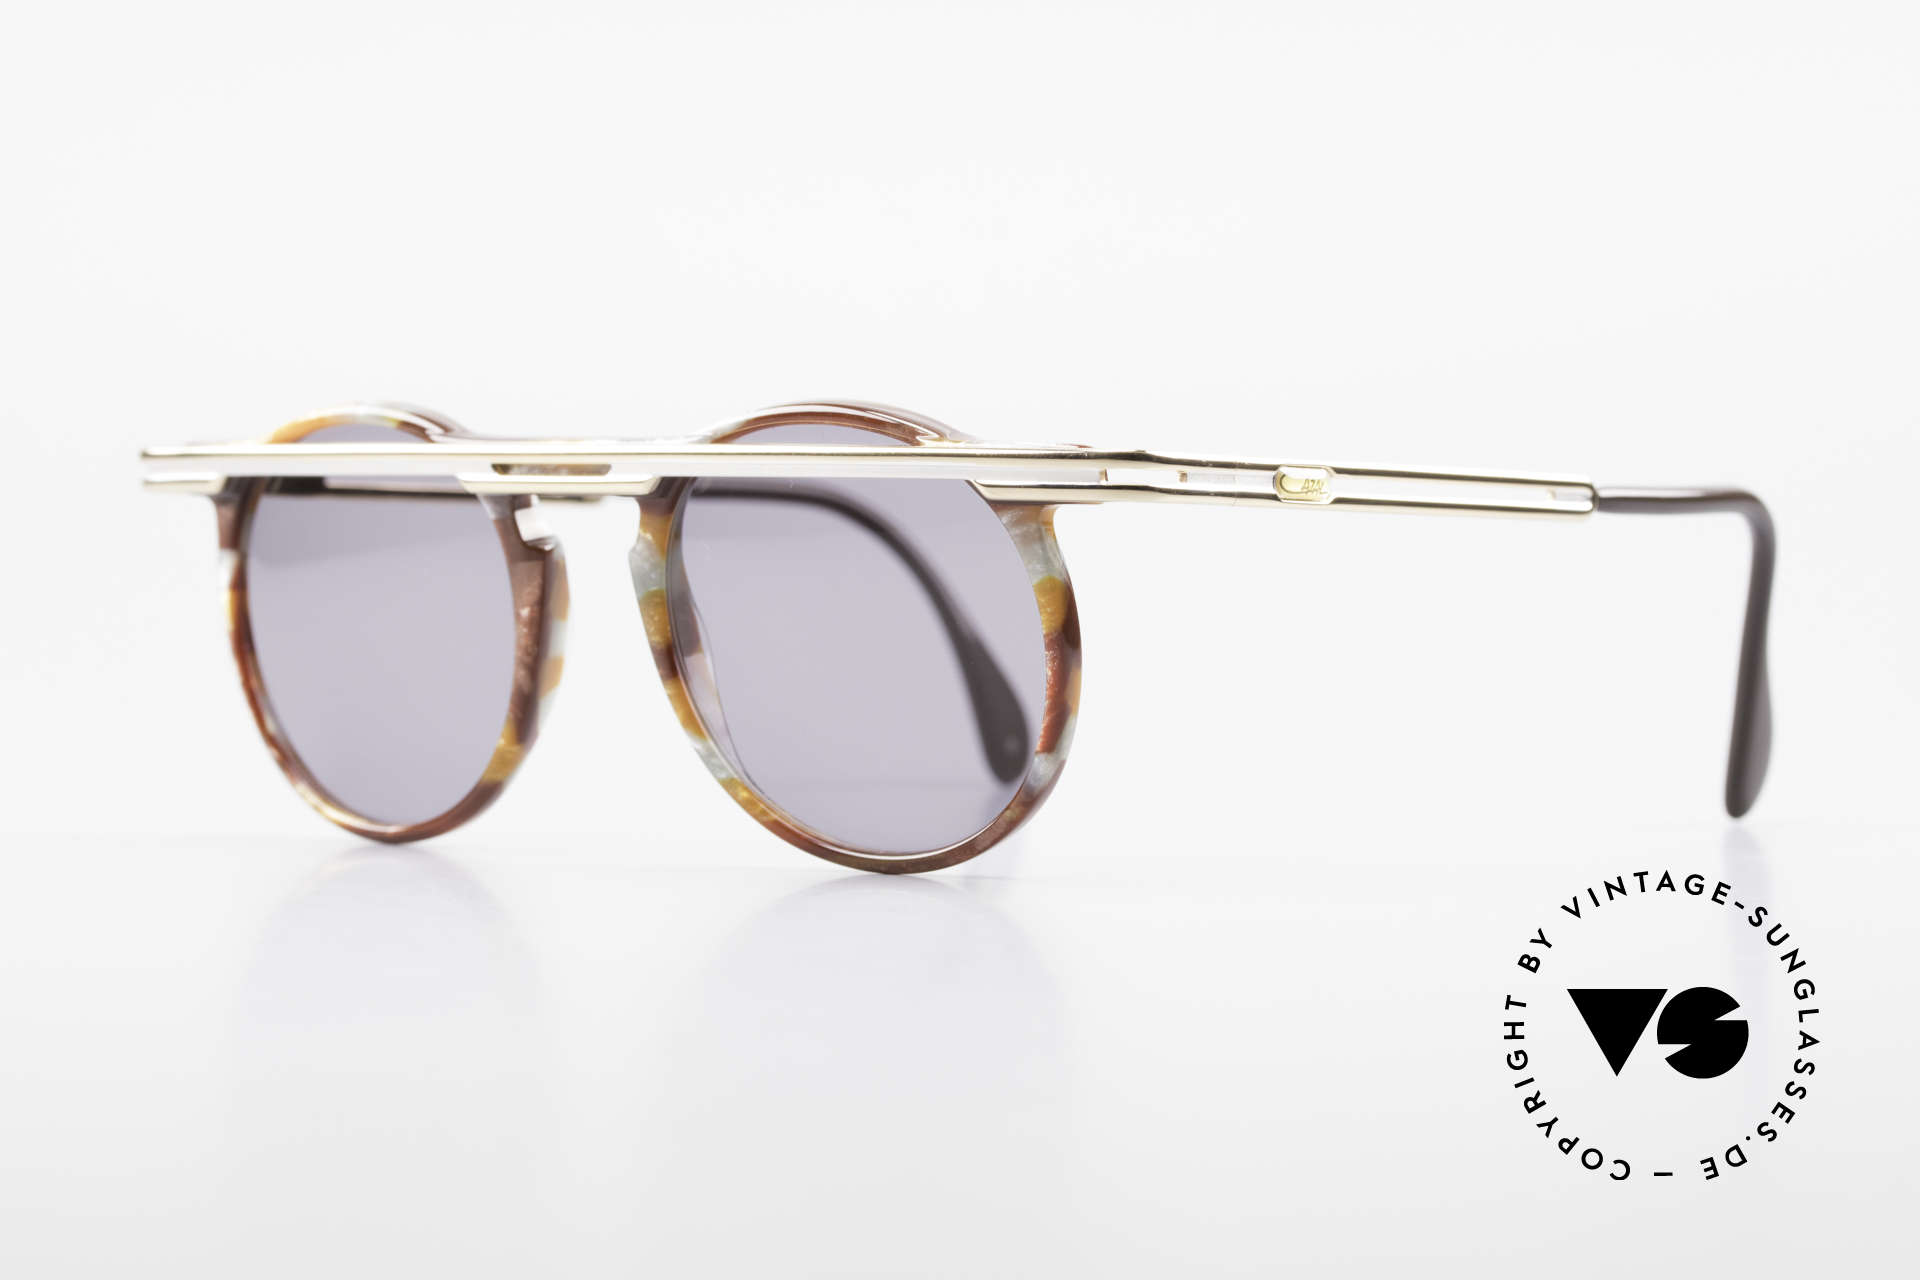 Cazal 648 Cari Zalloni Round Shades 90s, extroverted frame construction with unique coloring, Made for Men and Women